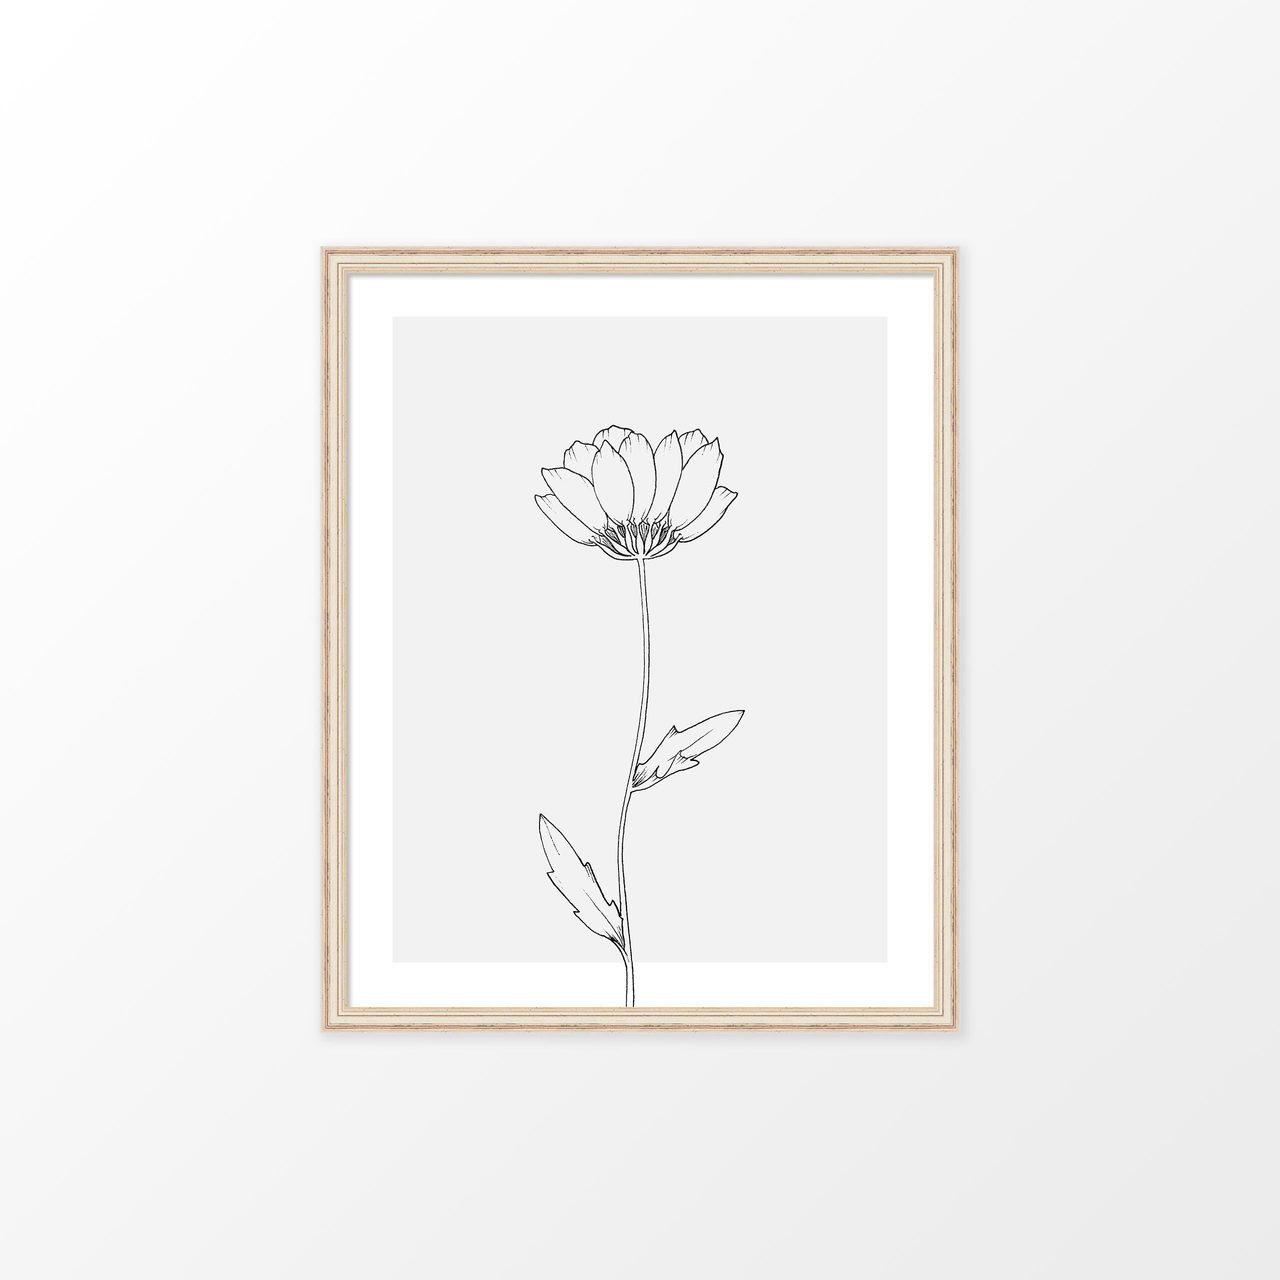 'Wildflower Study I' Art Print from The Printed Home